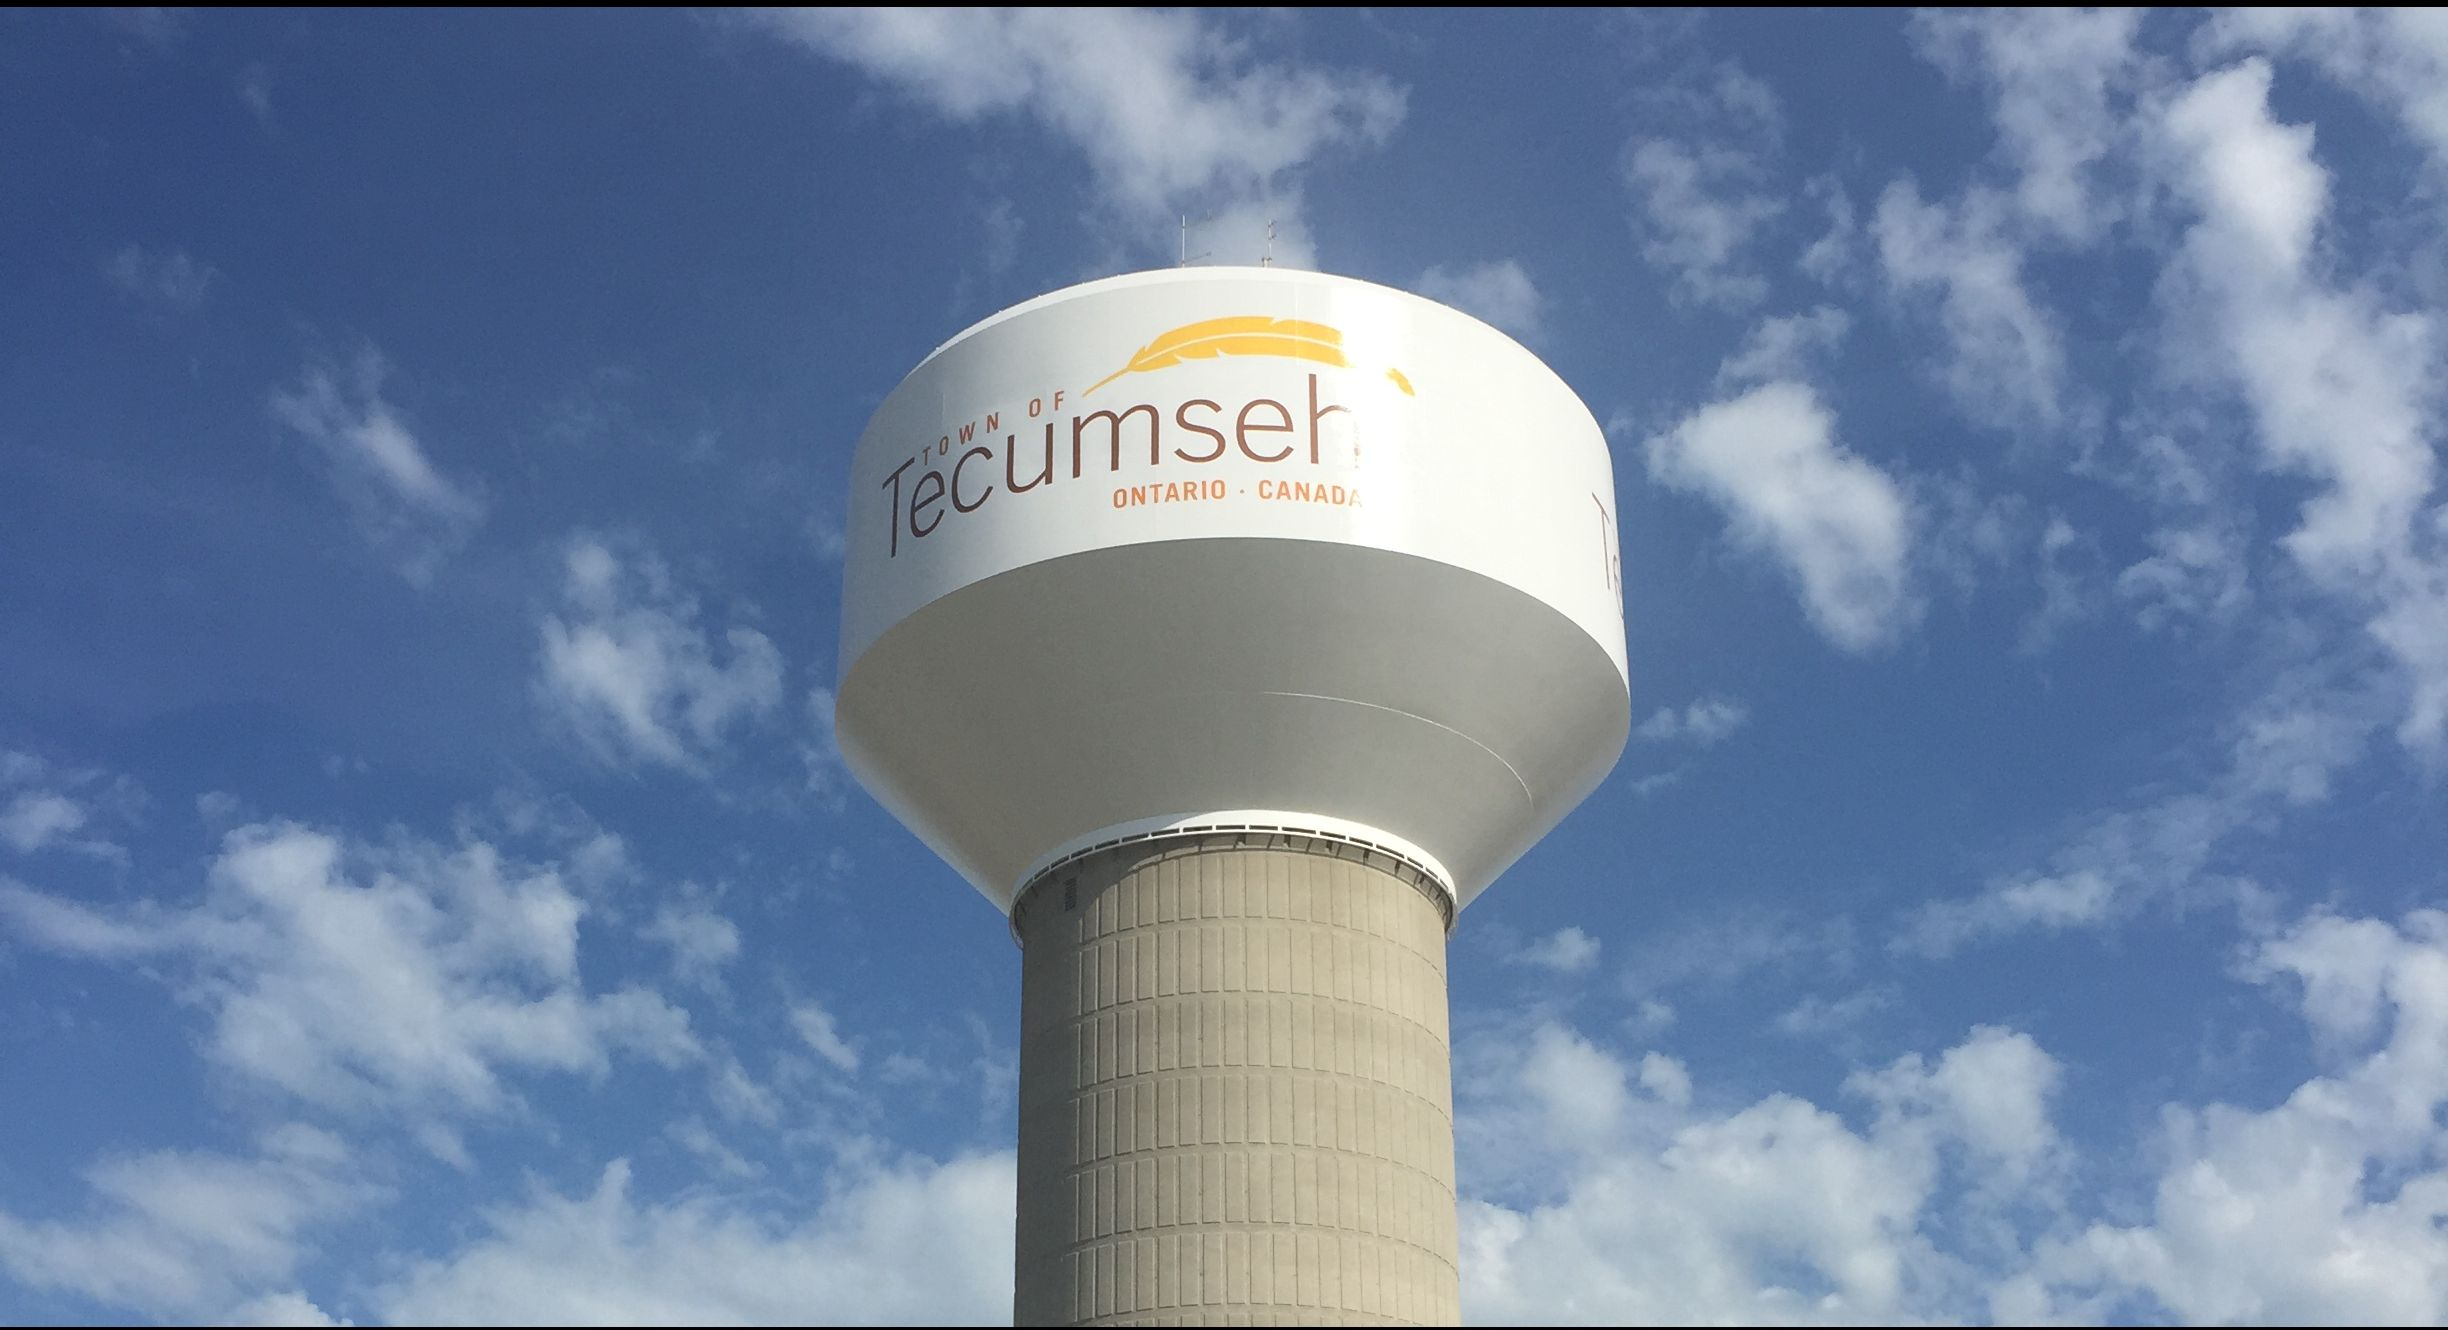 Tecumseh water tower